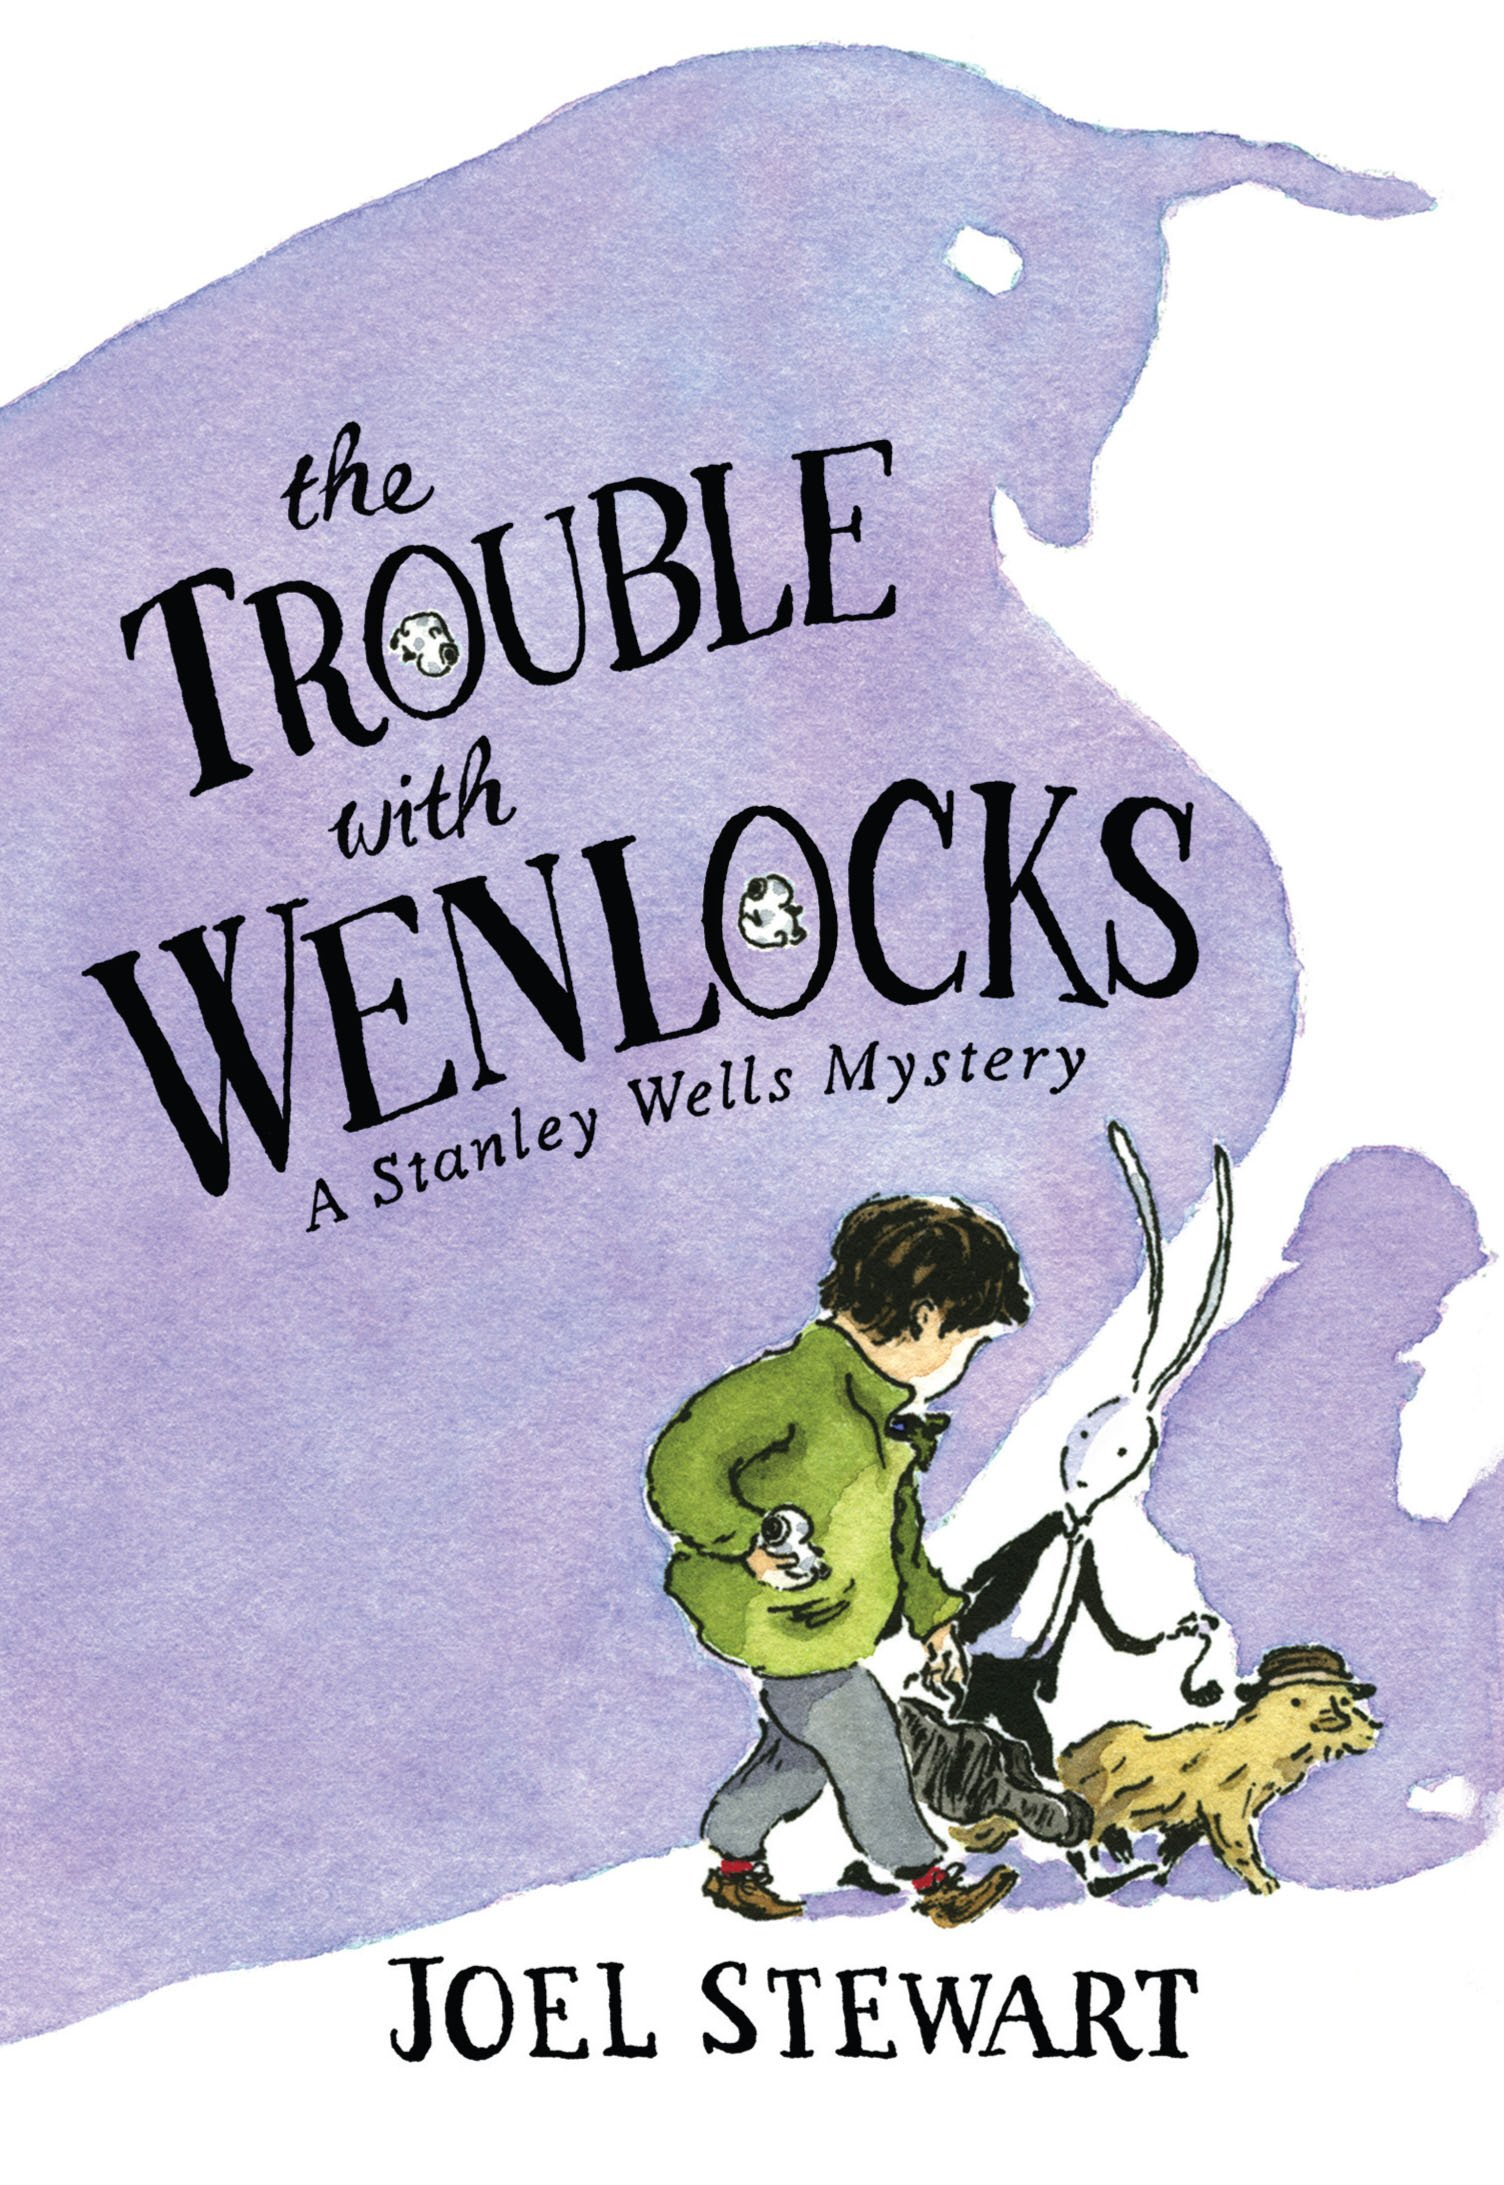 The Trouble with Wenlocks: A Stanley Wells Mystery (Bk. 1) PDF